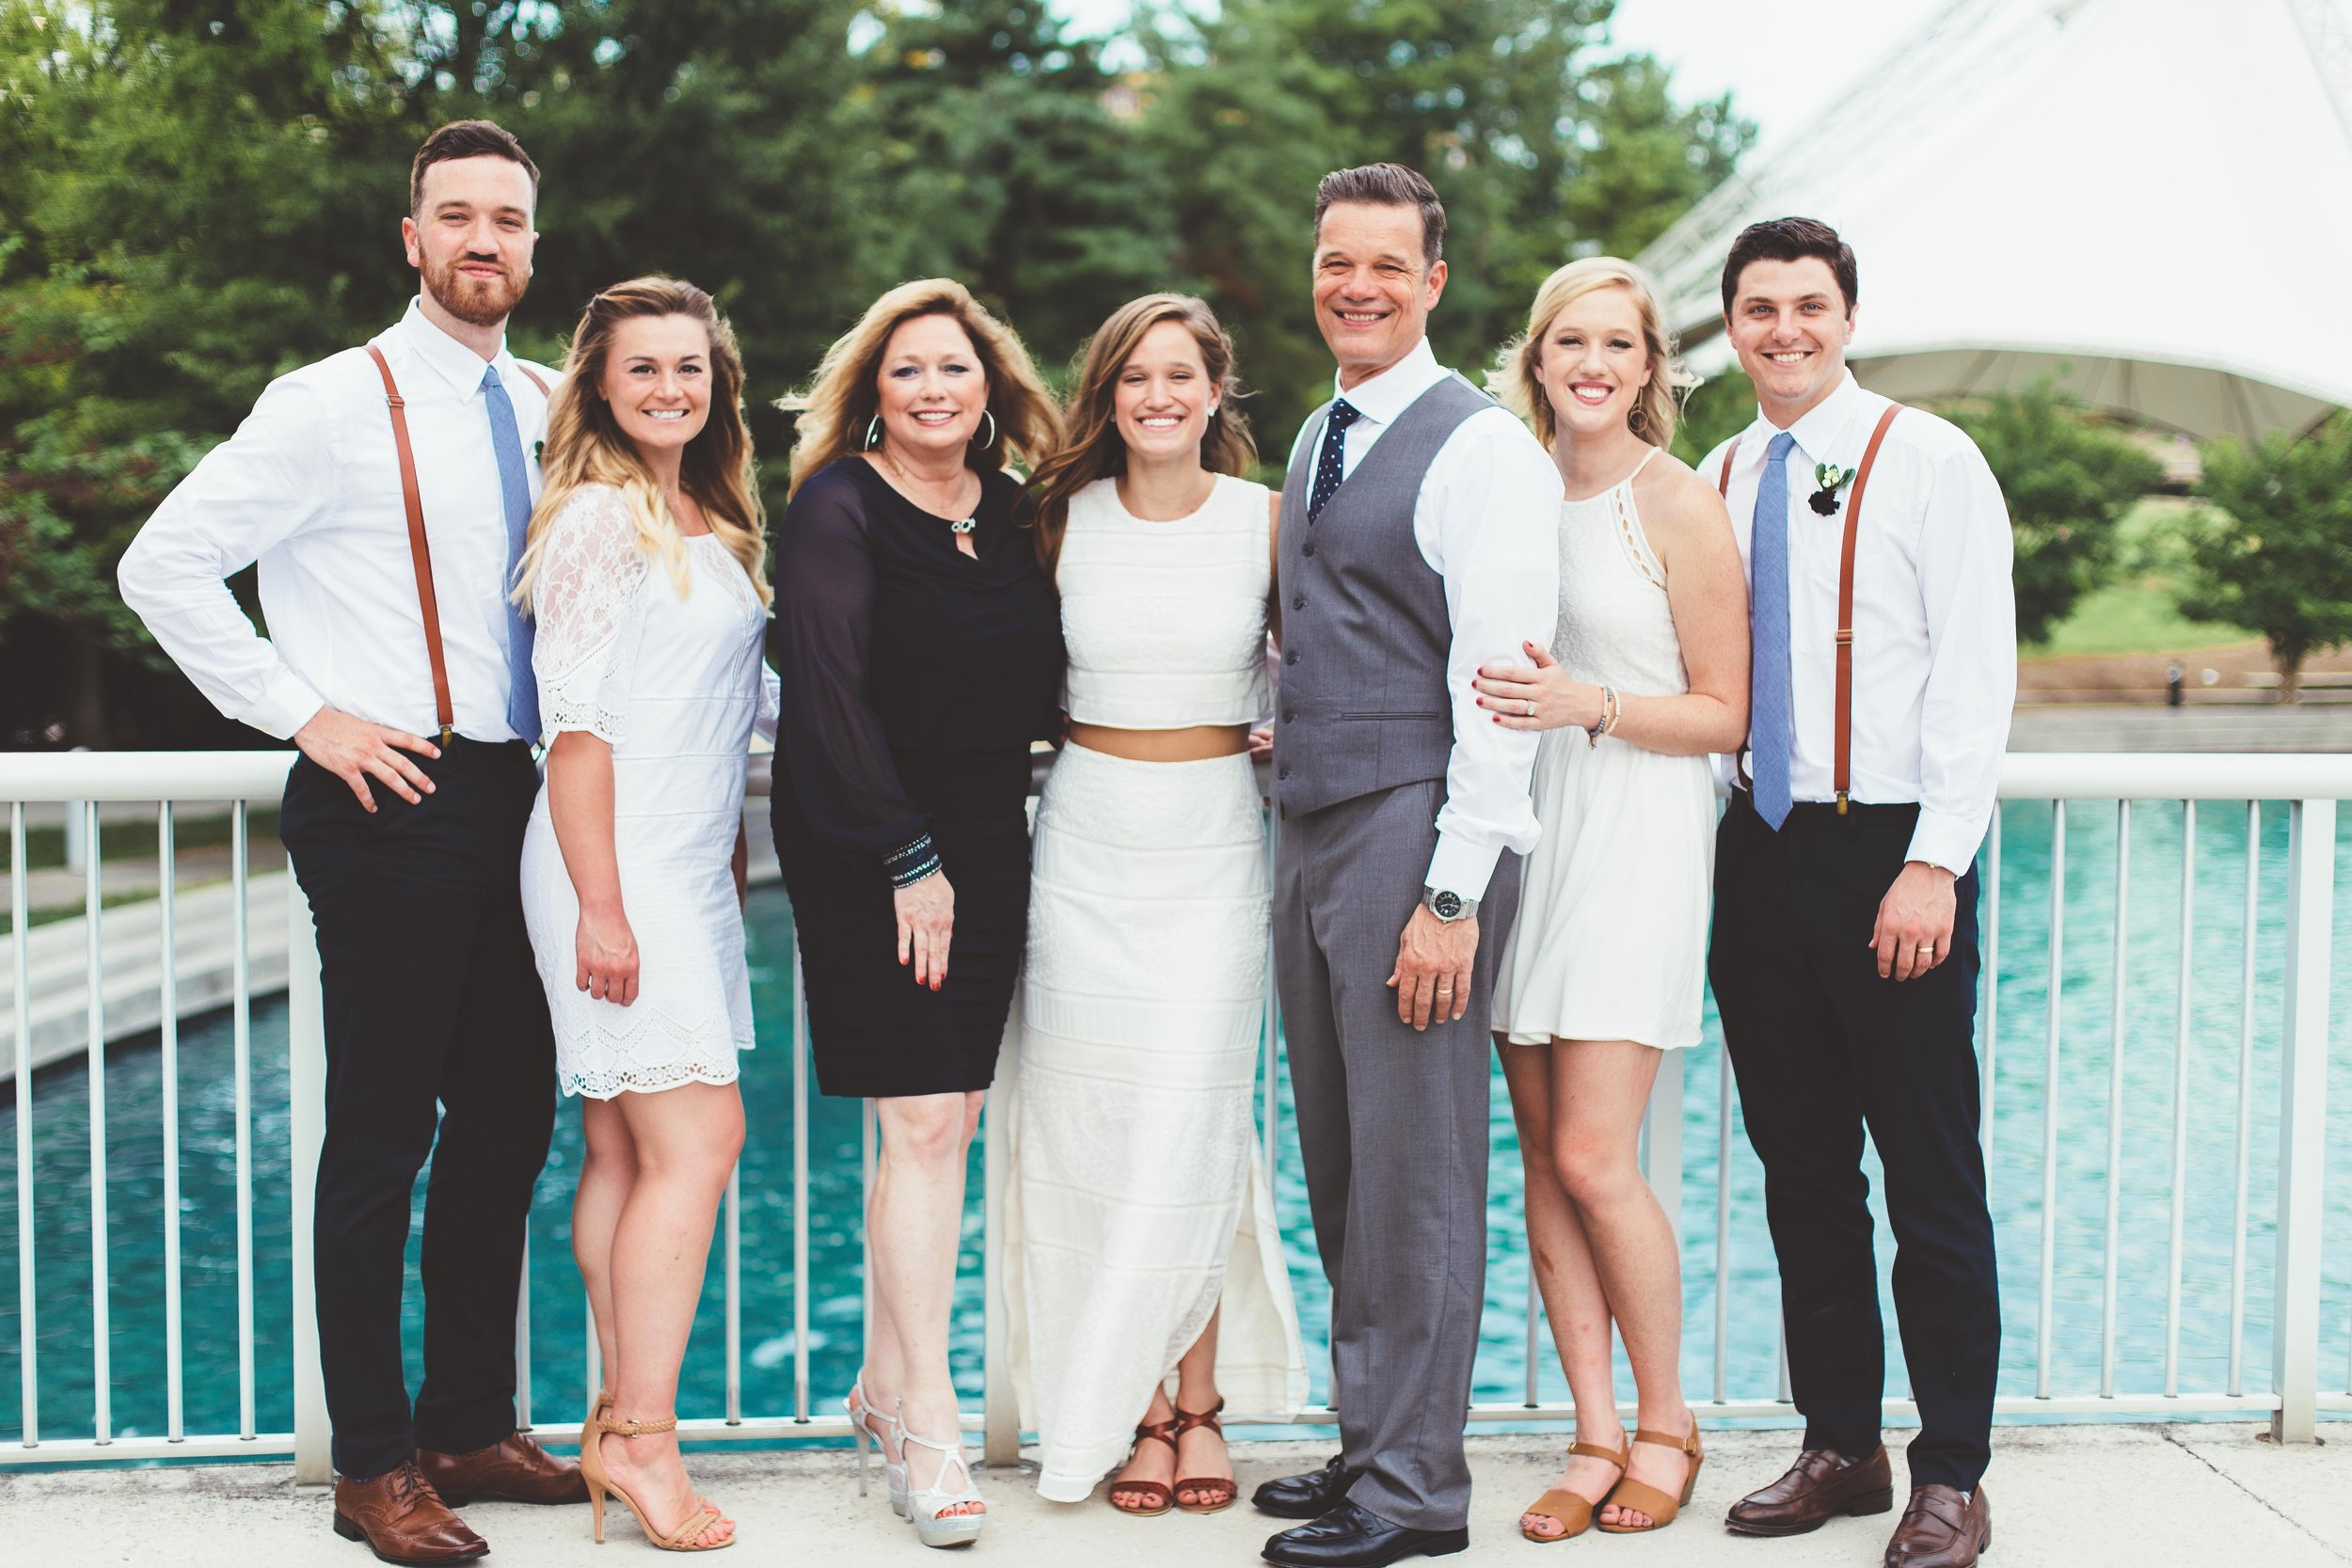 Allie & her family at her wedding.